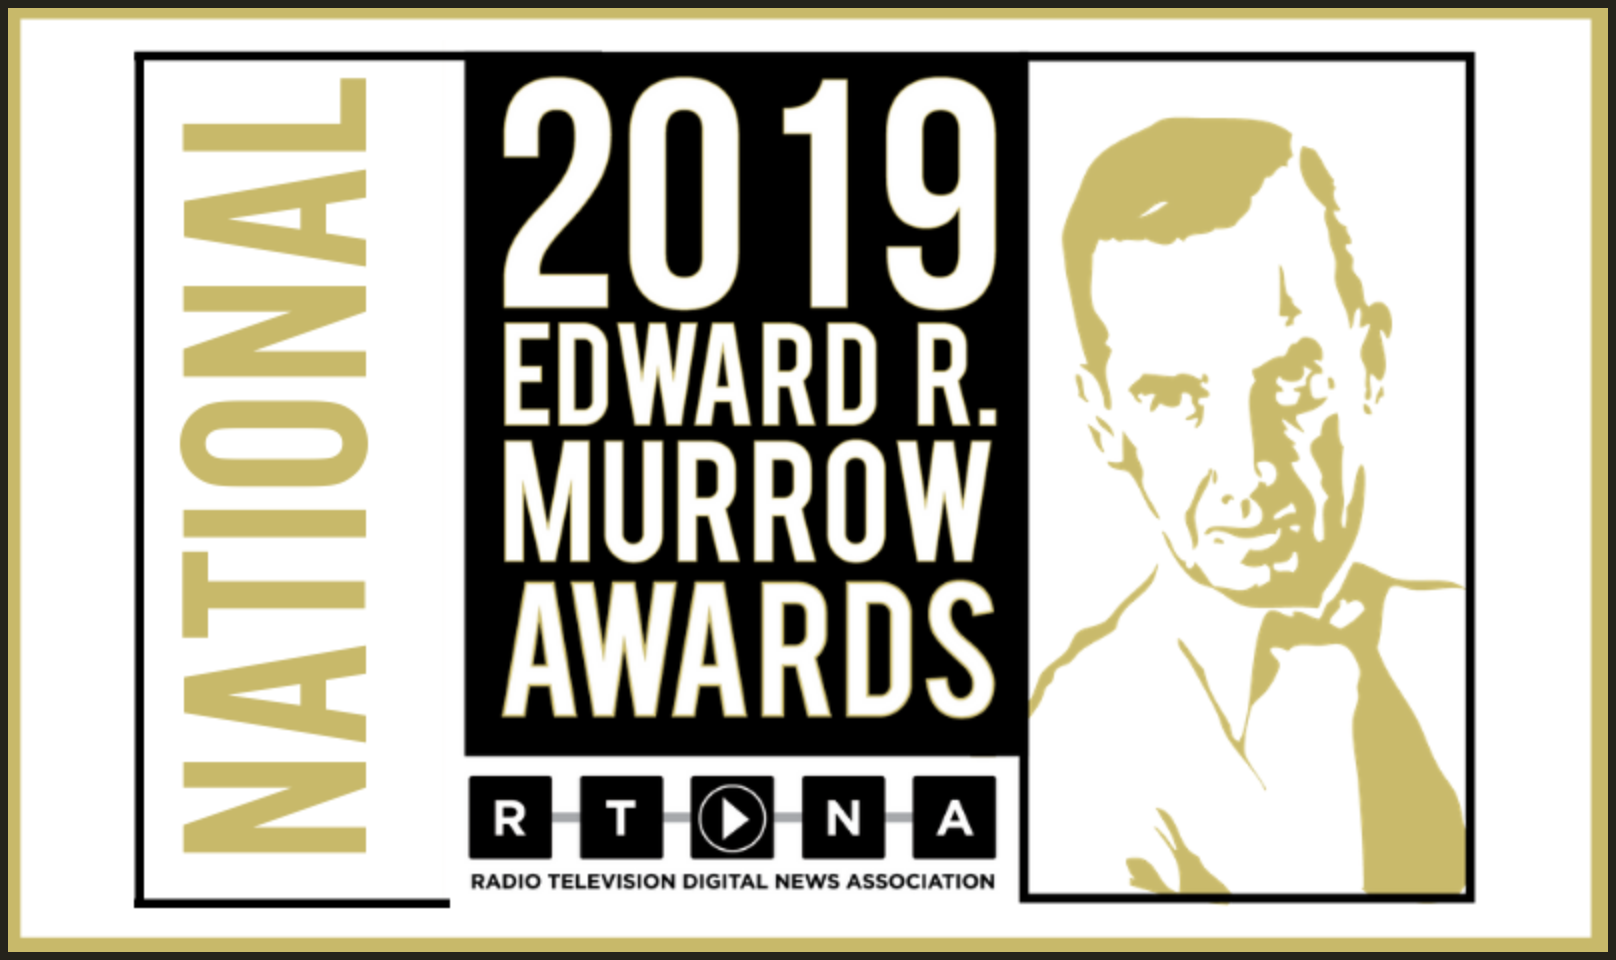 USAGM networks recognized for excellence with Edward R. Murrow Awards